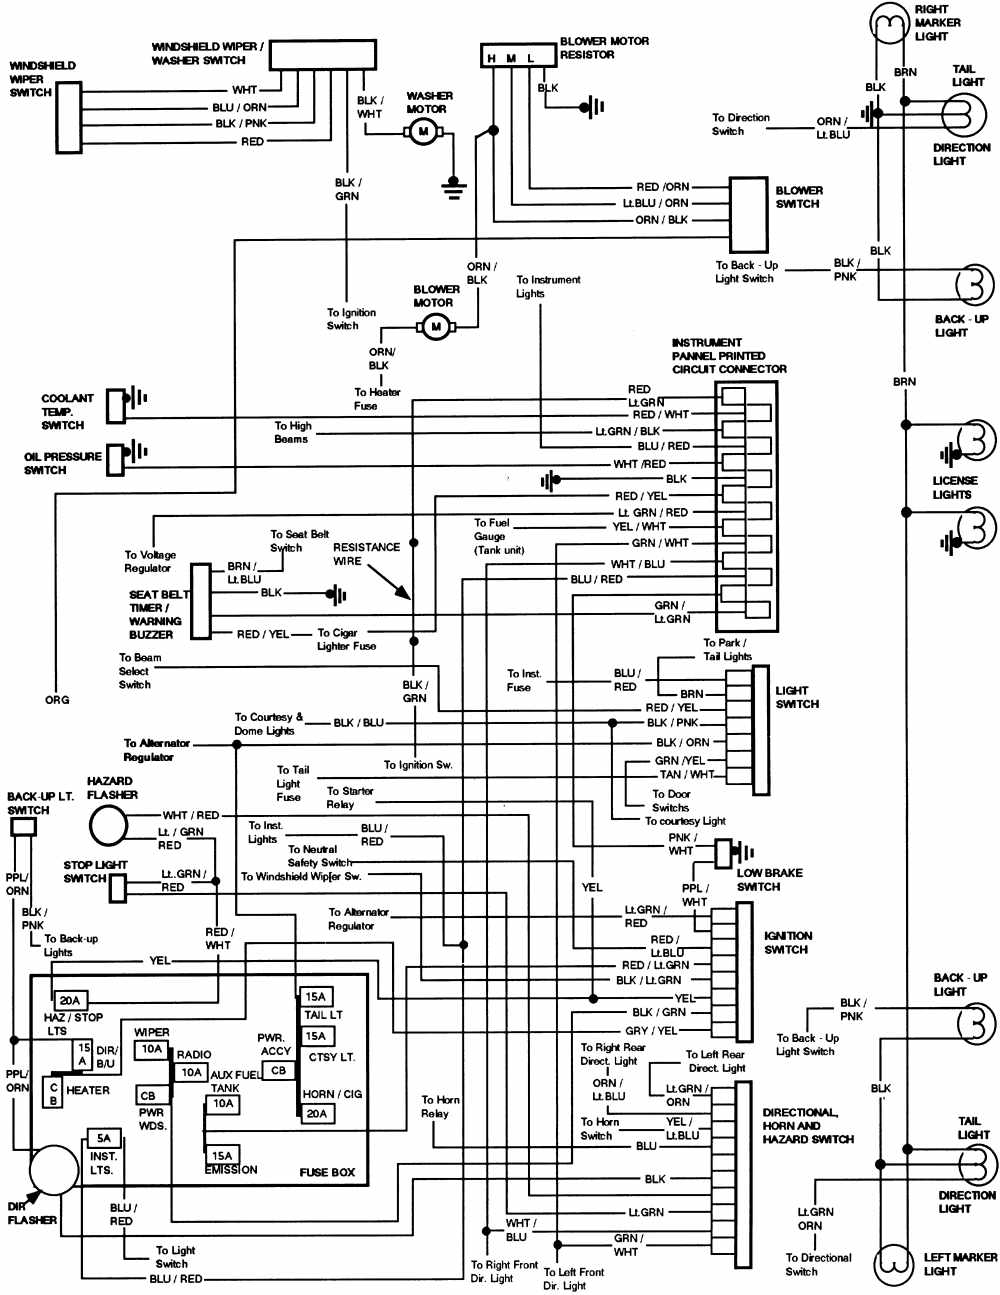 2009 gmc sierra tail light wiring diagram